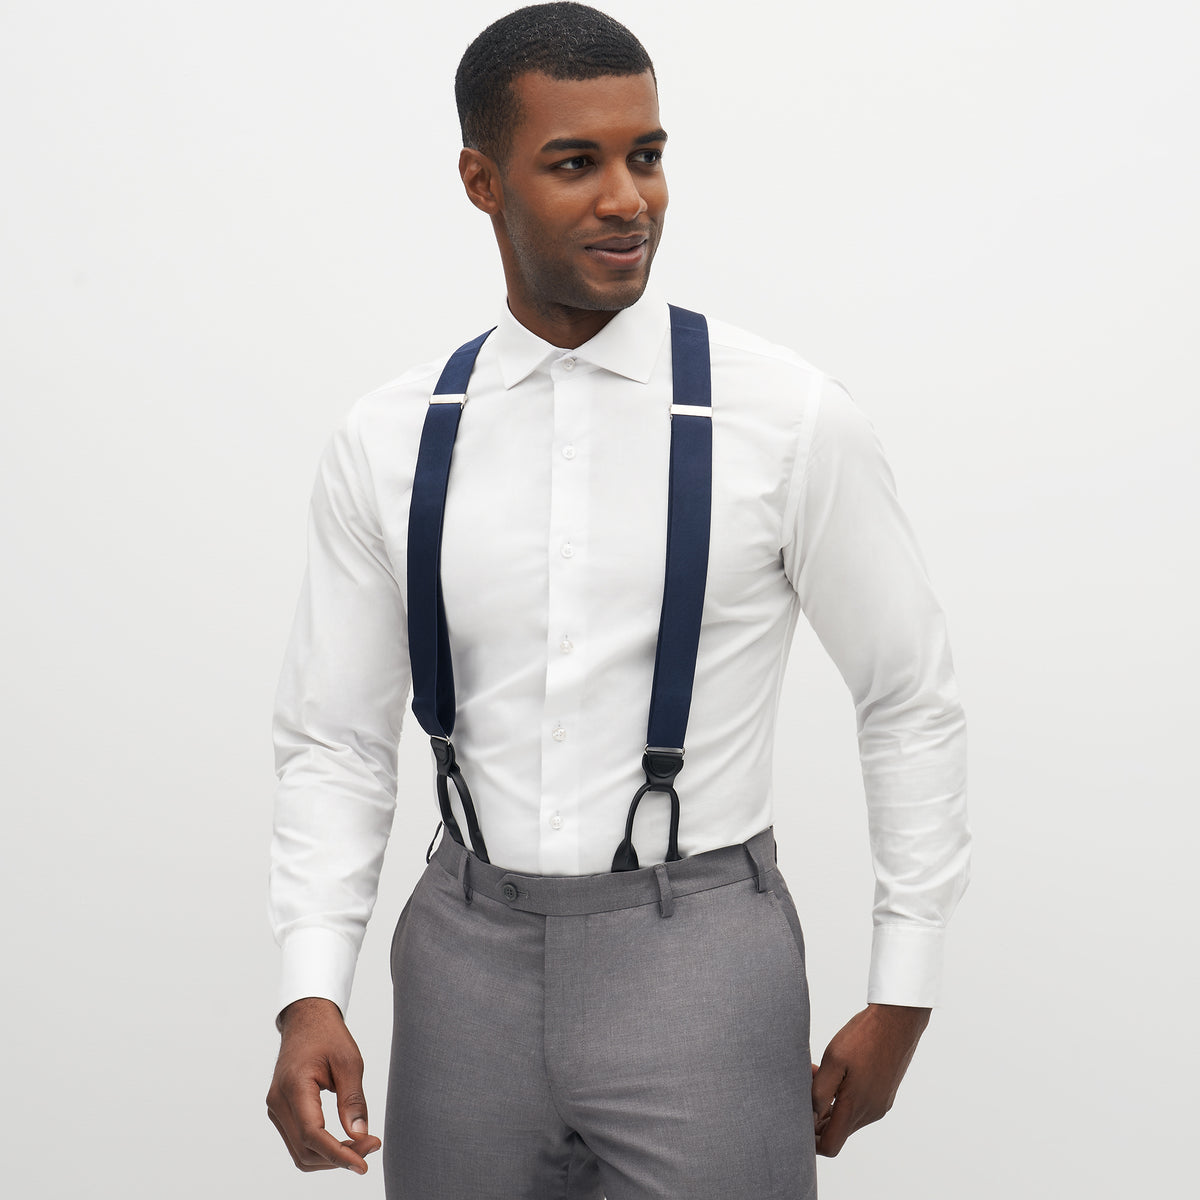 Grosgrain Solid Navy Suspenders